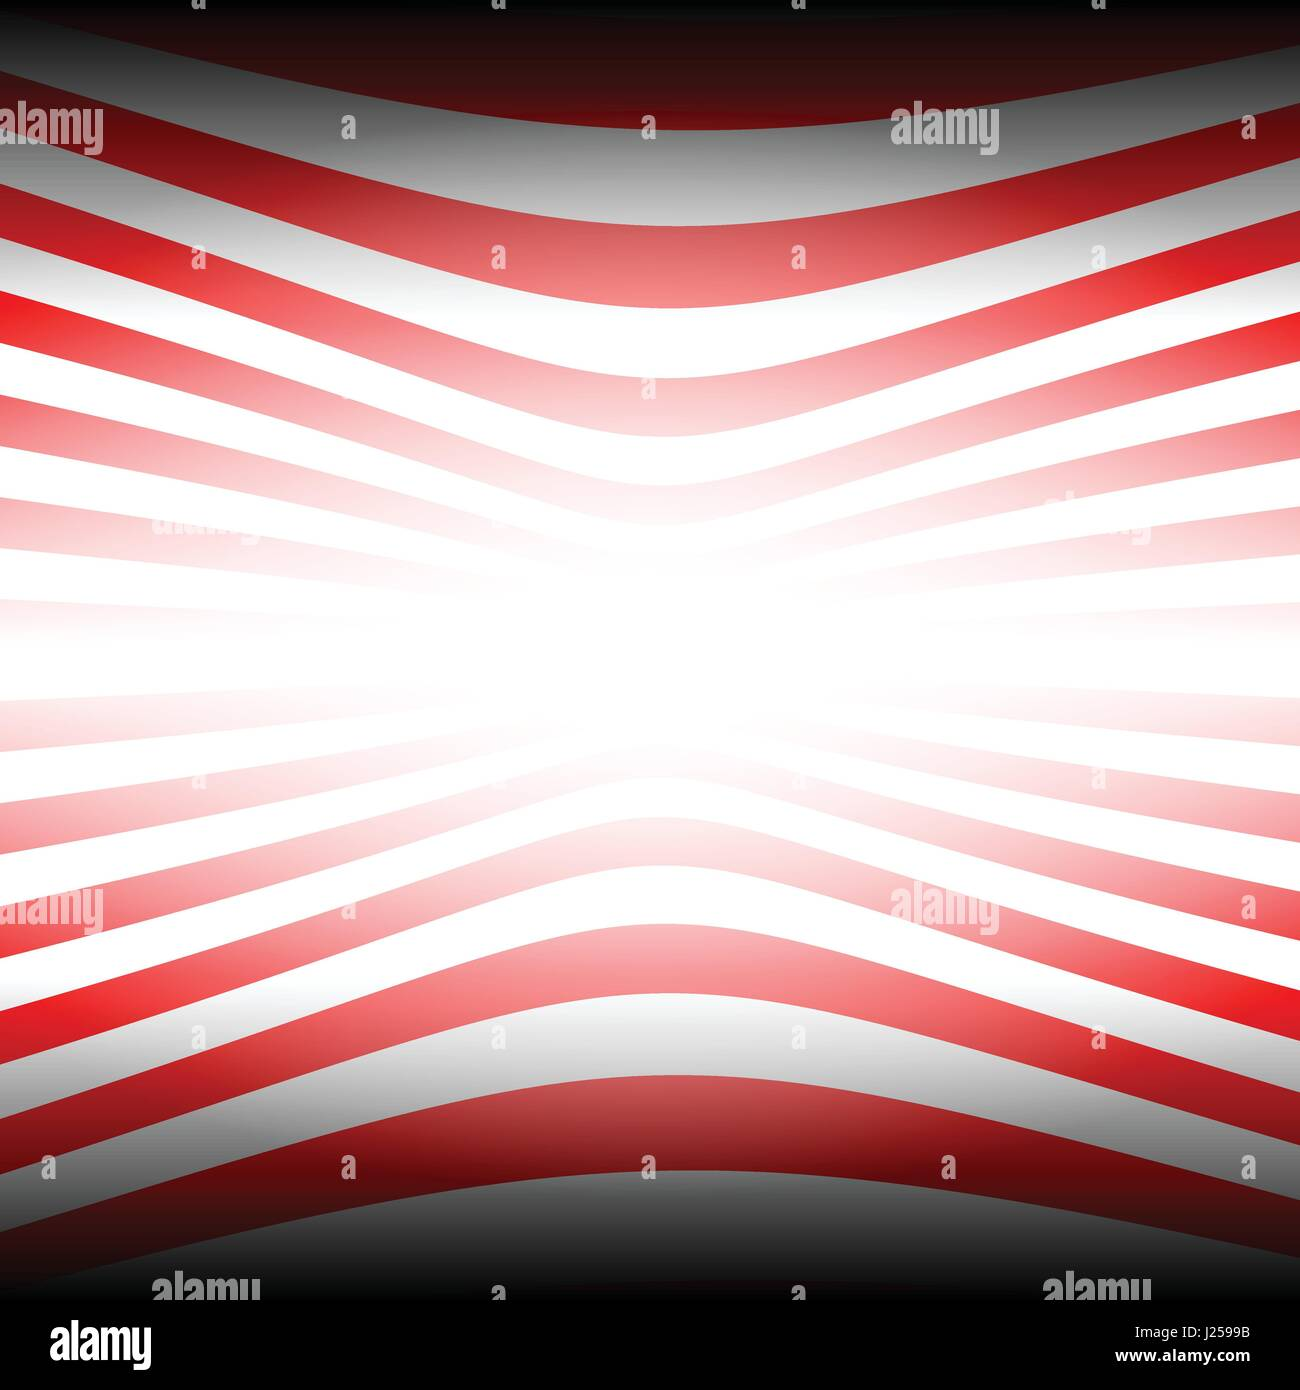 Two tone red stripes abstract background concept - Stock Image